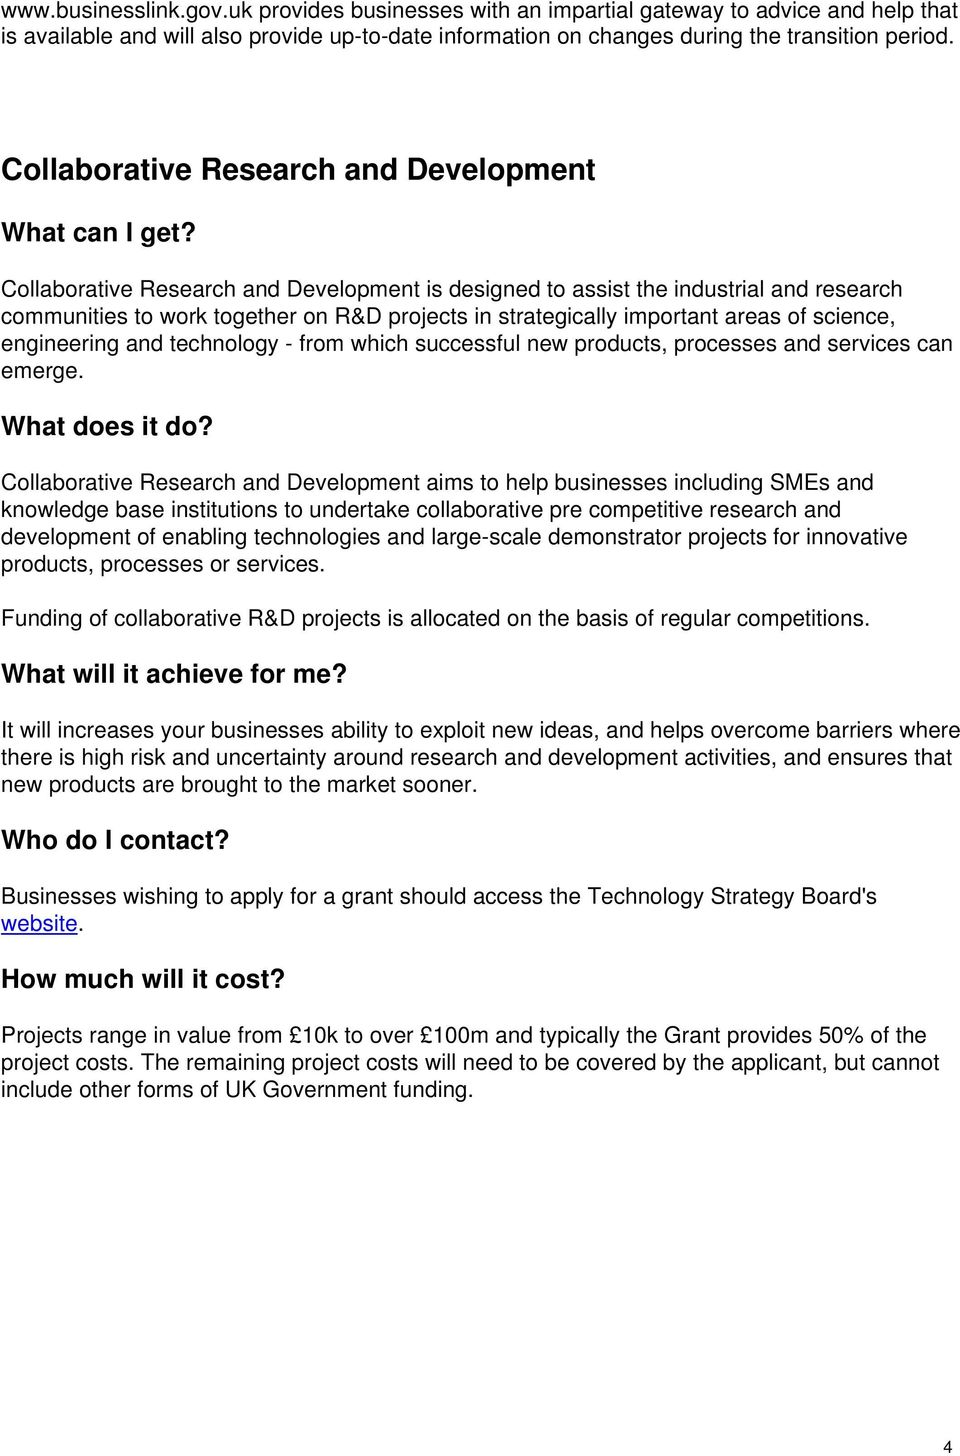 Collaborative Research and Development aims to help businesses including SMEs and knowledge base institutions to undertake collaborative pre competitive research and development of enabling